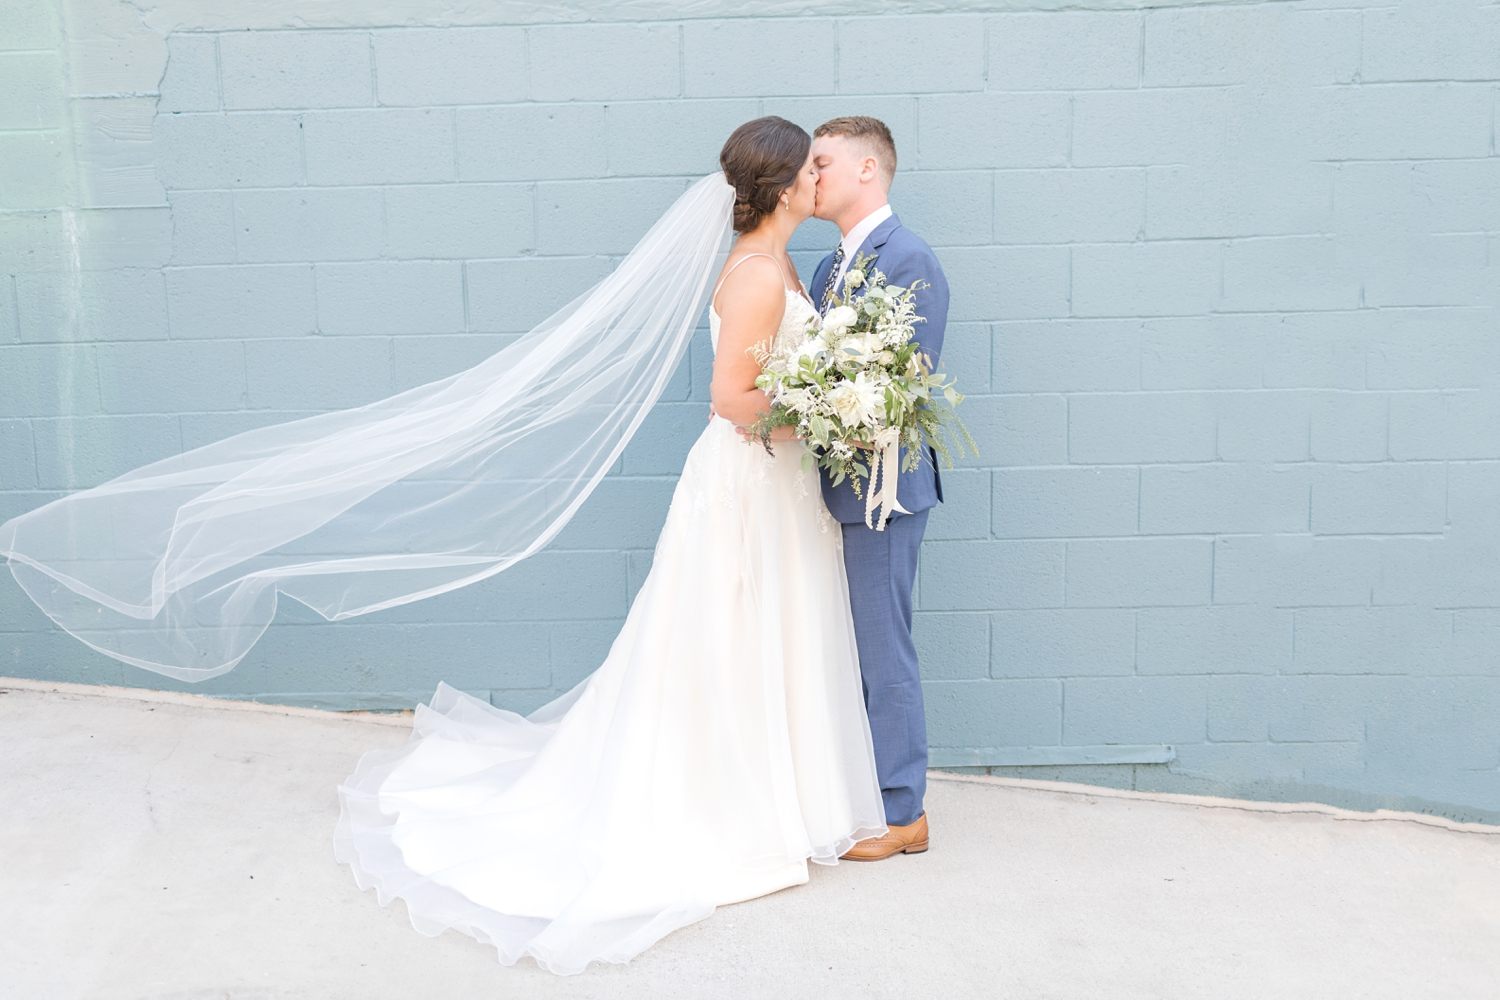 The blue wall matched their wedding theme! Love it.